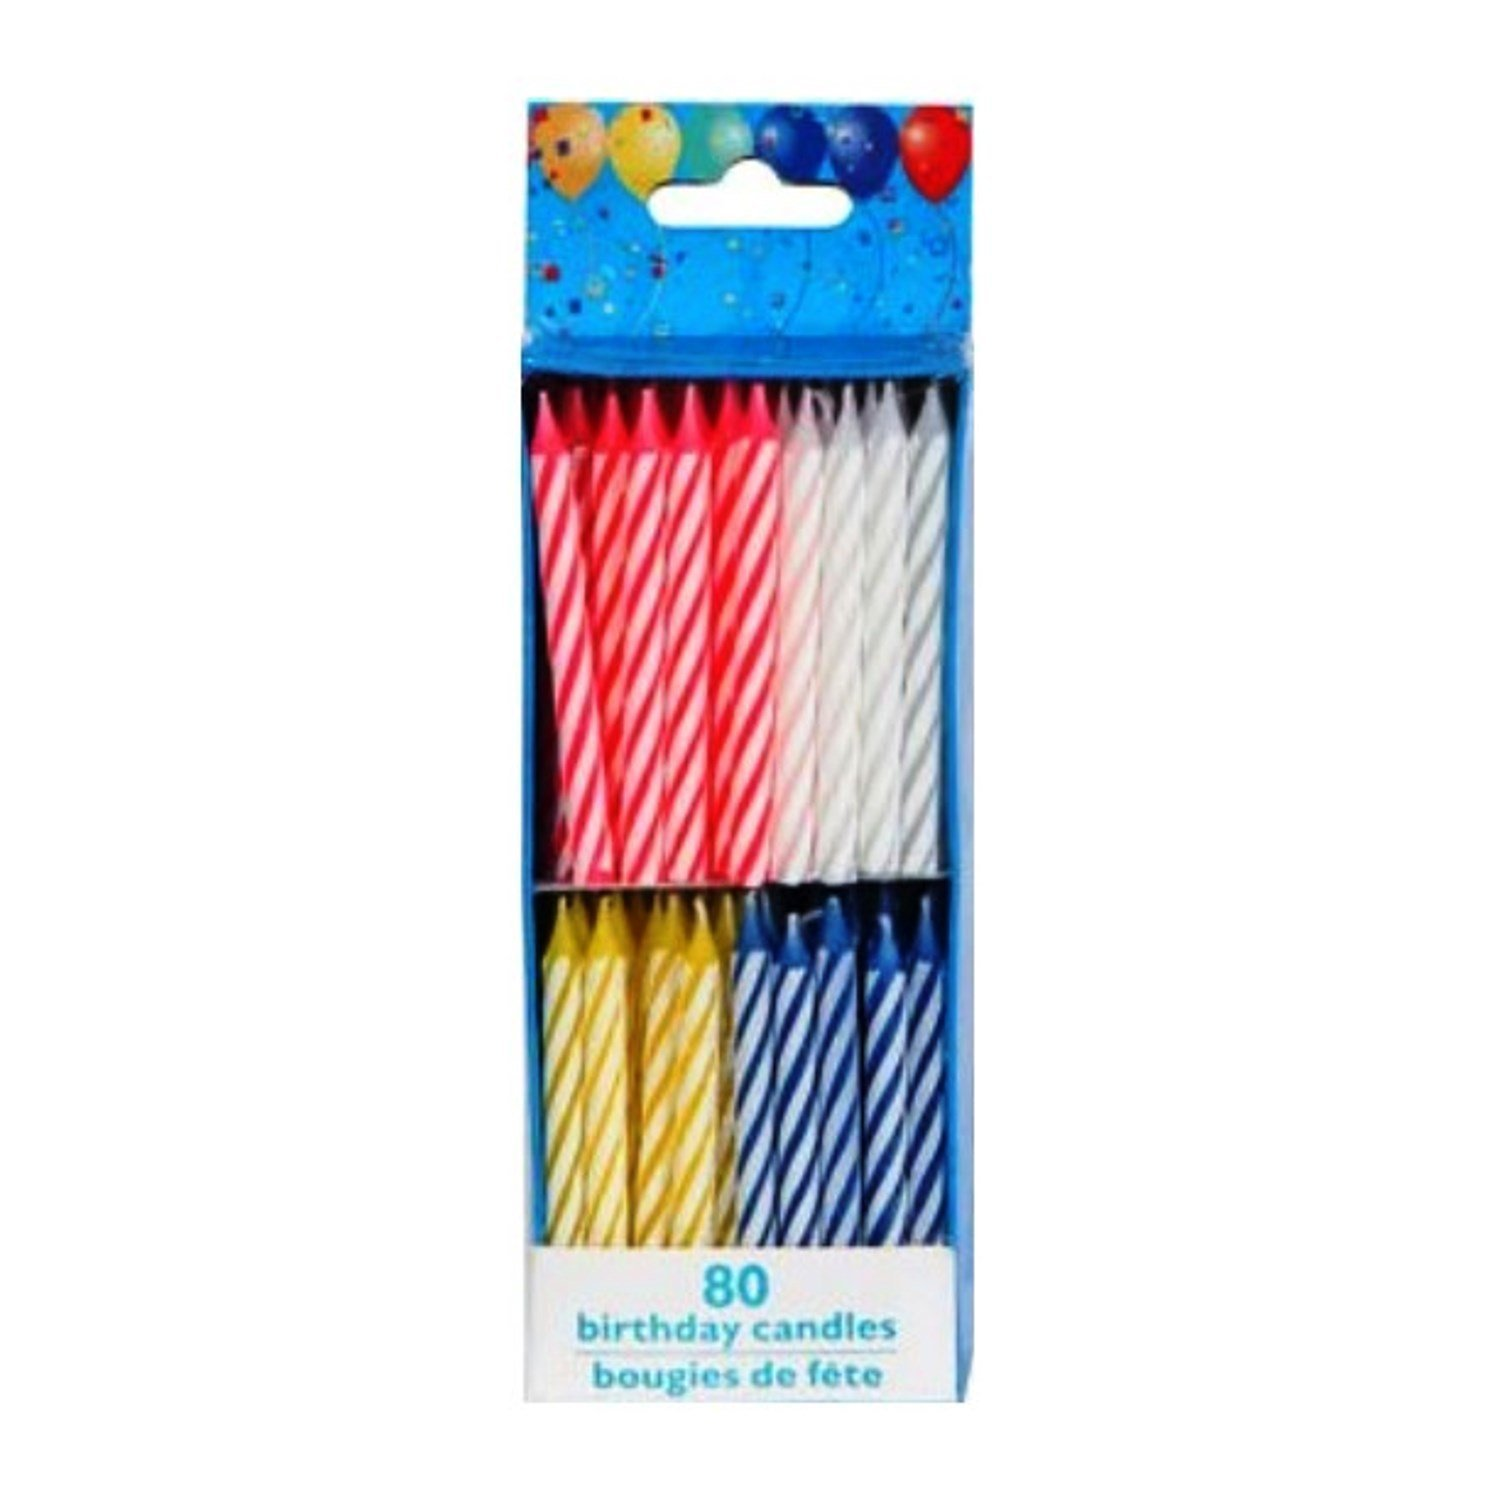 Birthday Candles 80 Count Spiral Brights By Dollar Tree Party SG B006IKOXHW US